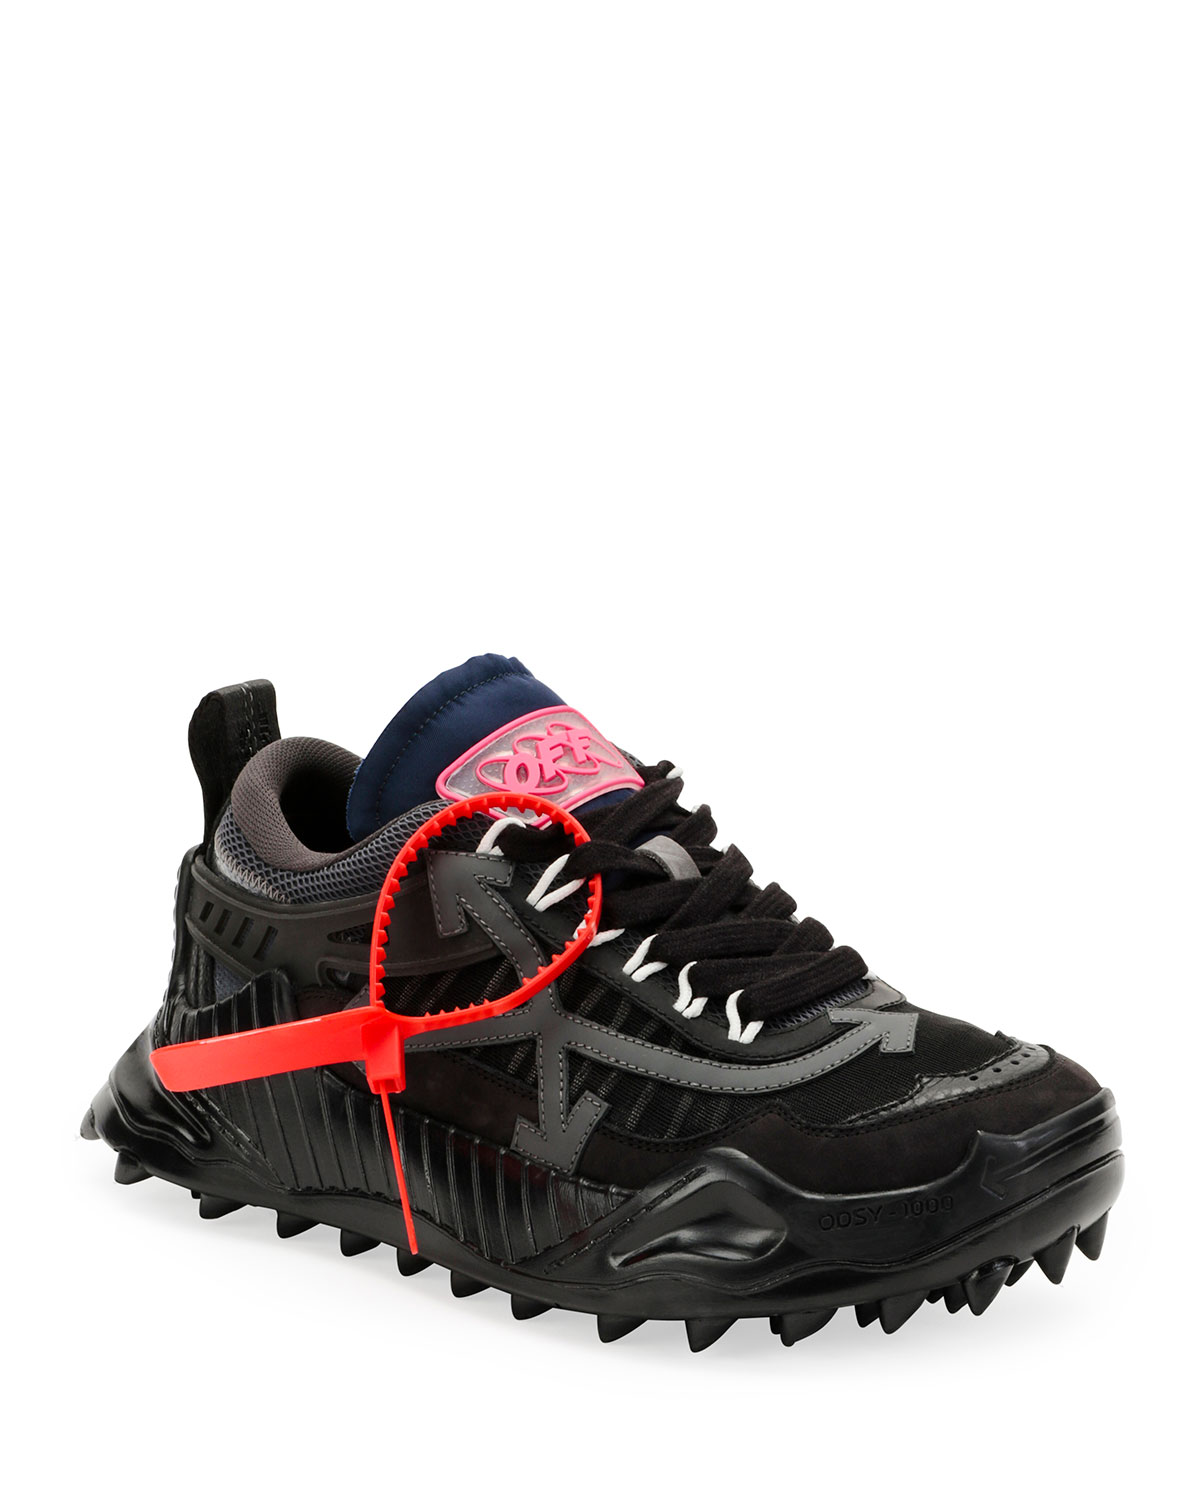 Off-White Odsy Chunky Sneakers | Neiman